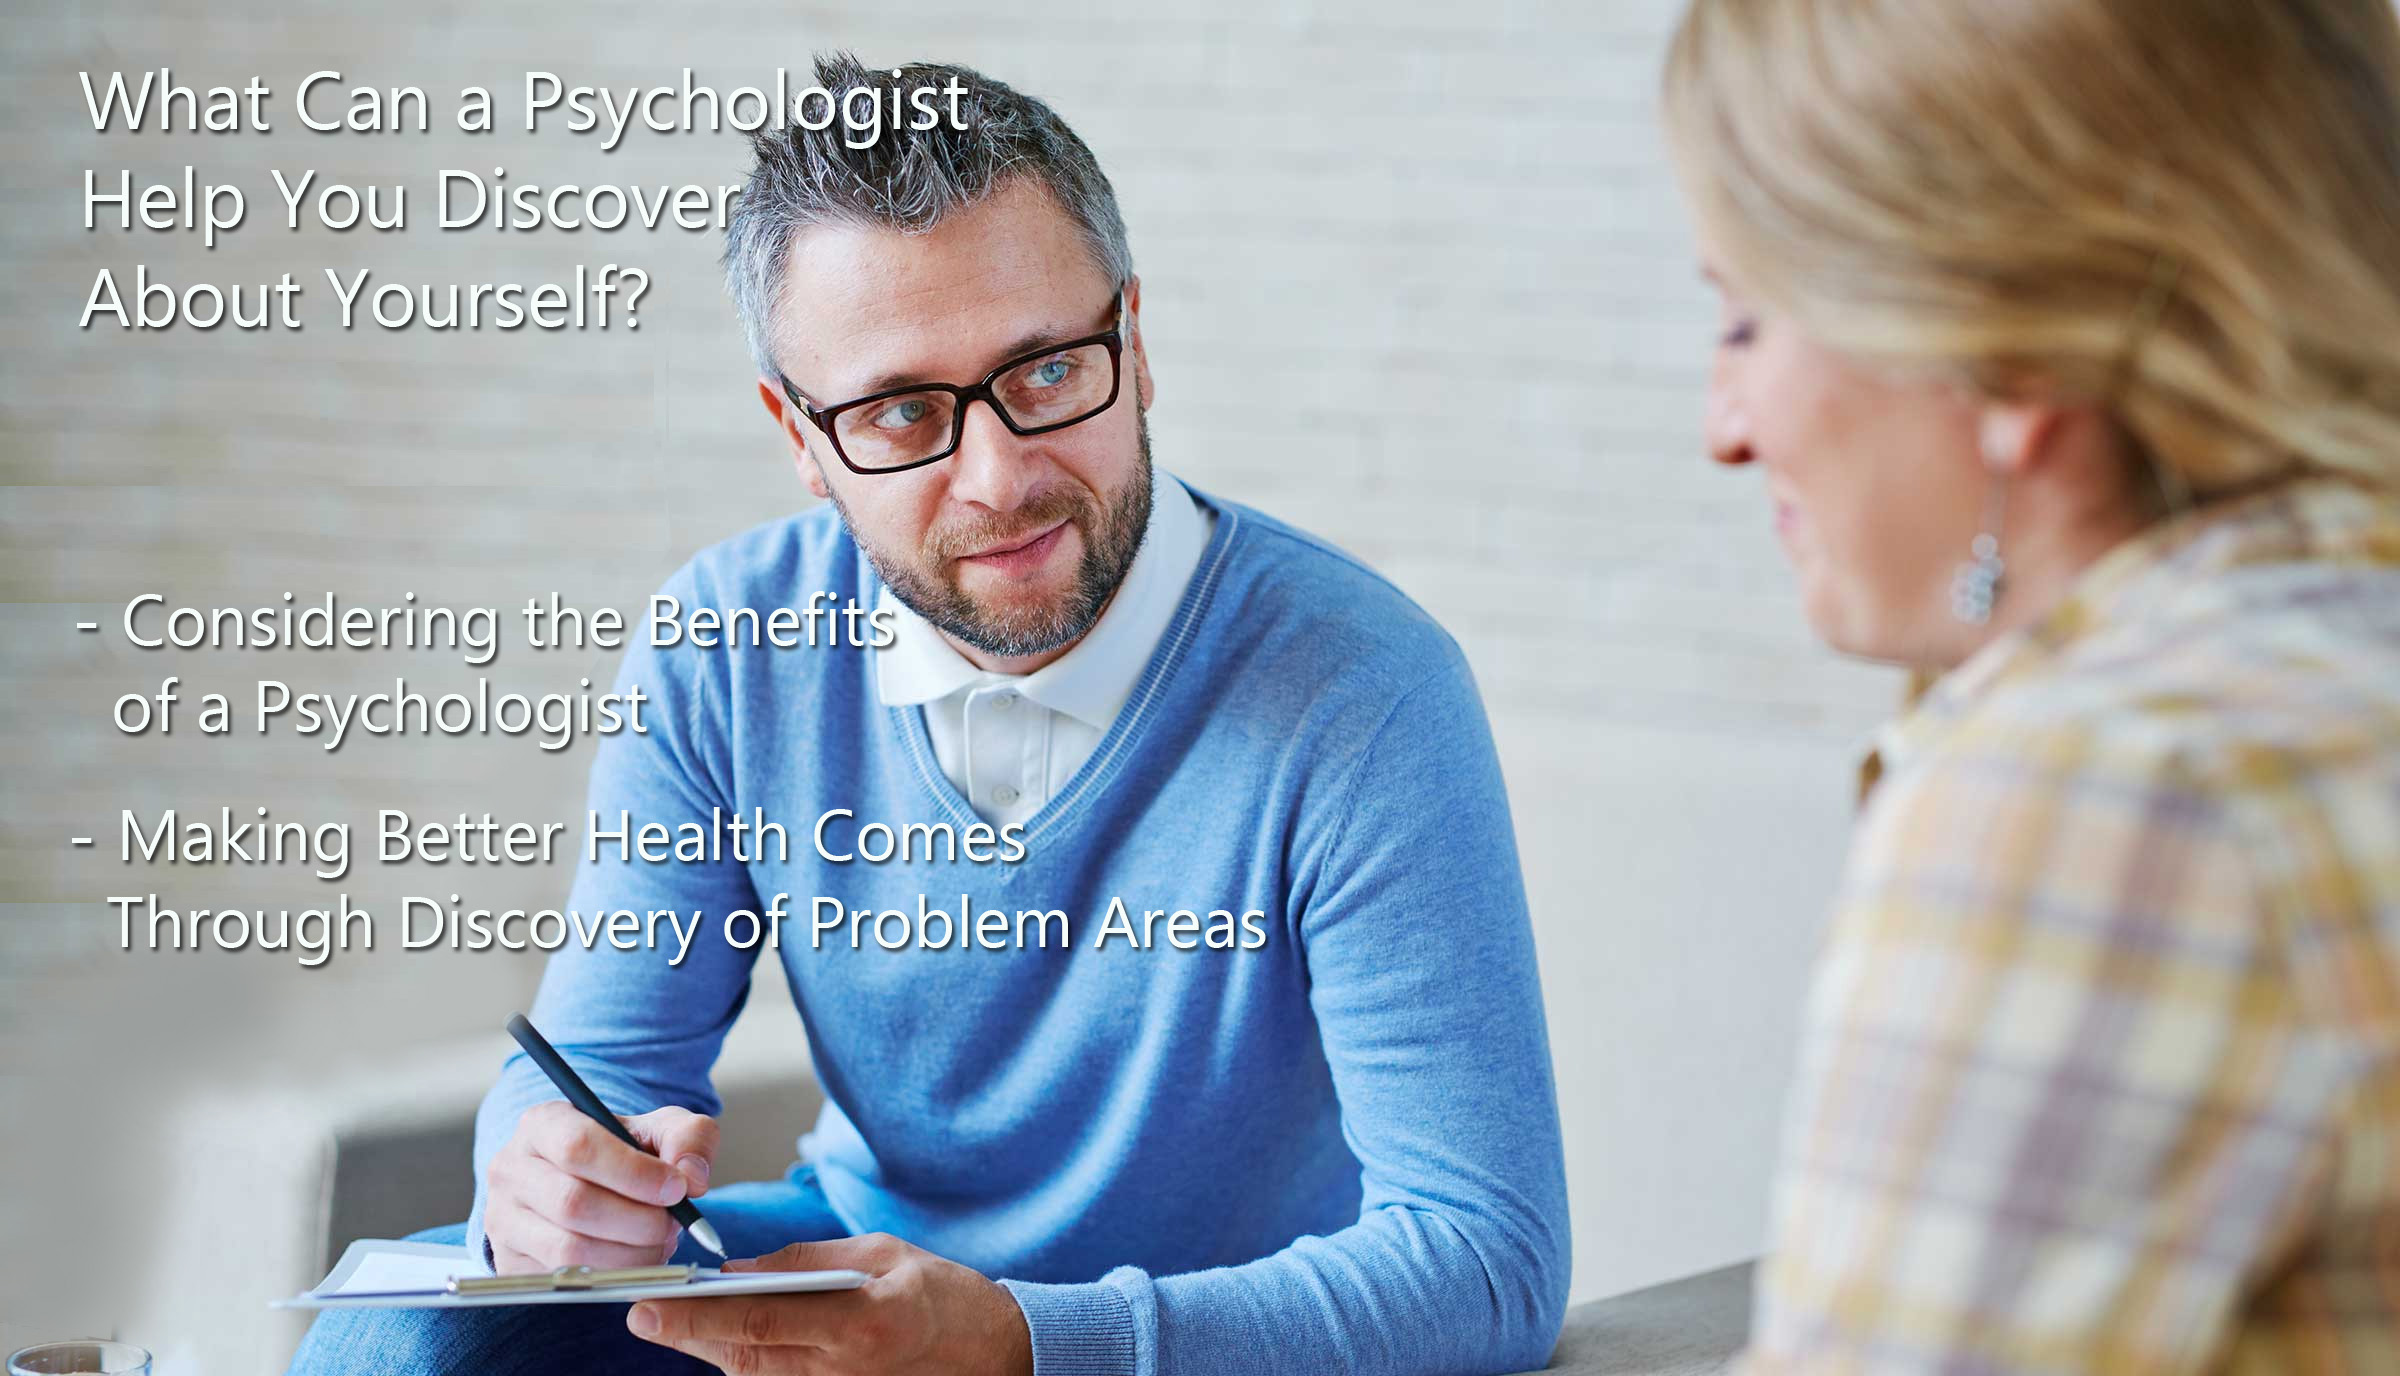 What Can a Psychologist Help You Discover About Yourself?